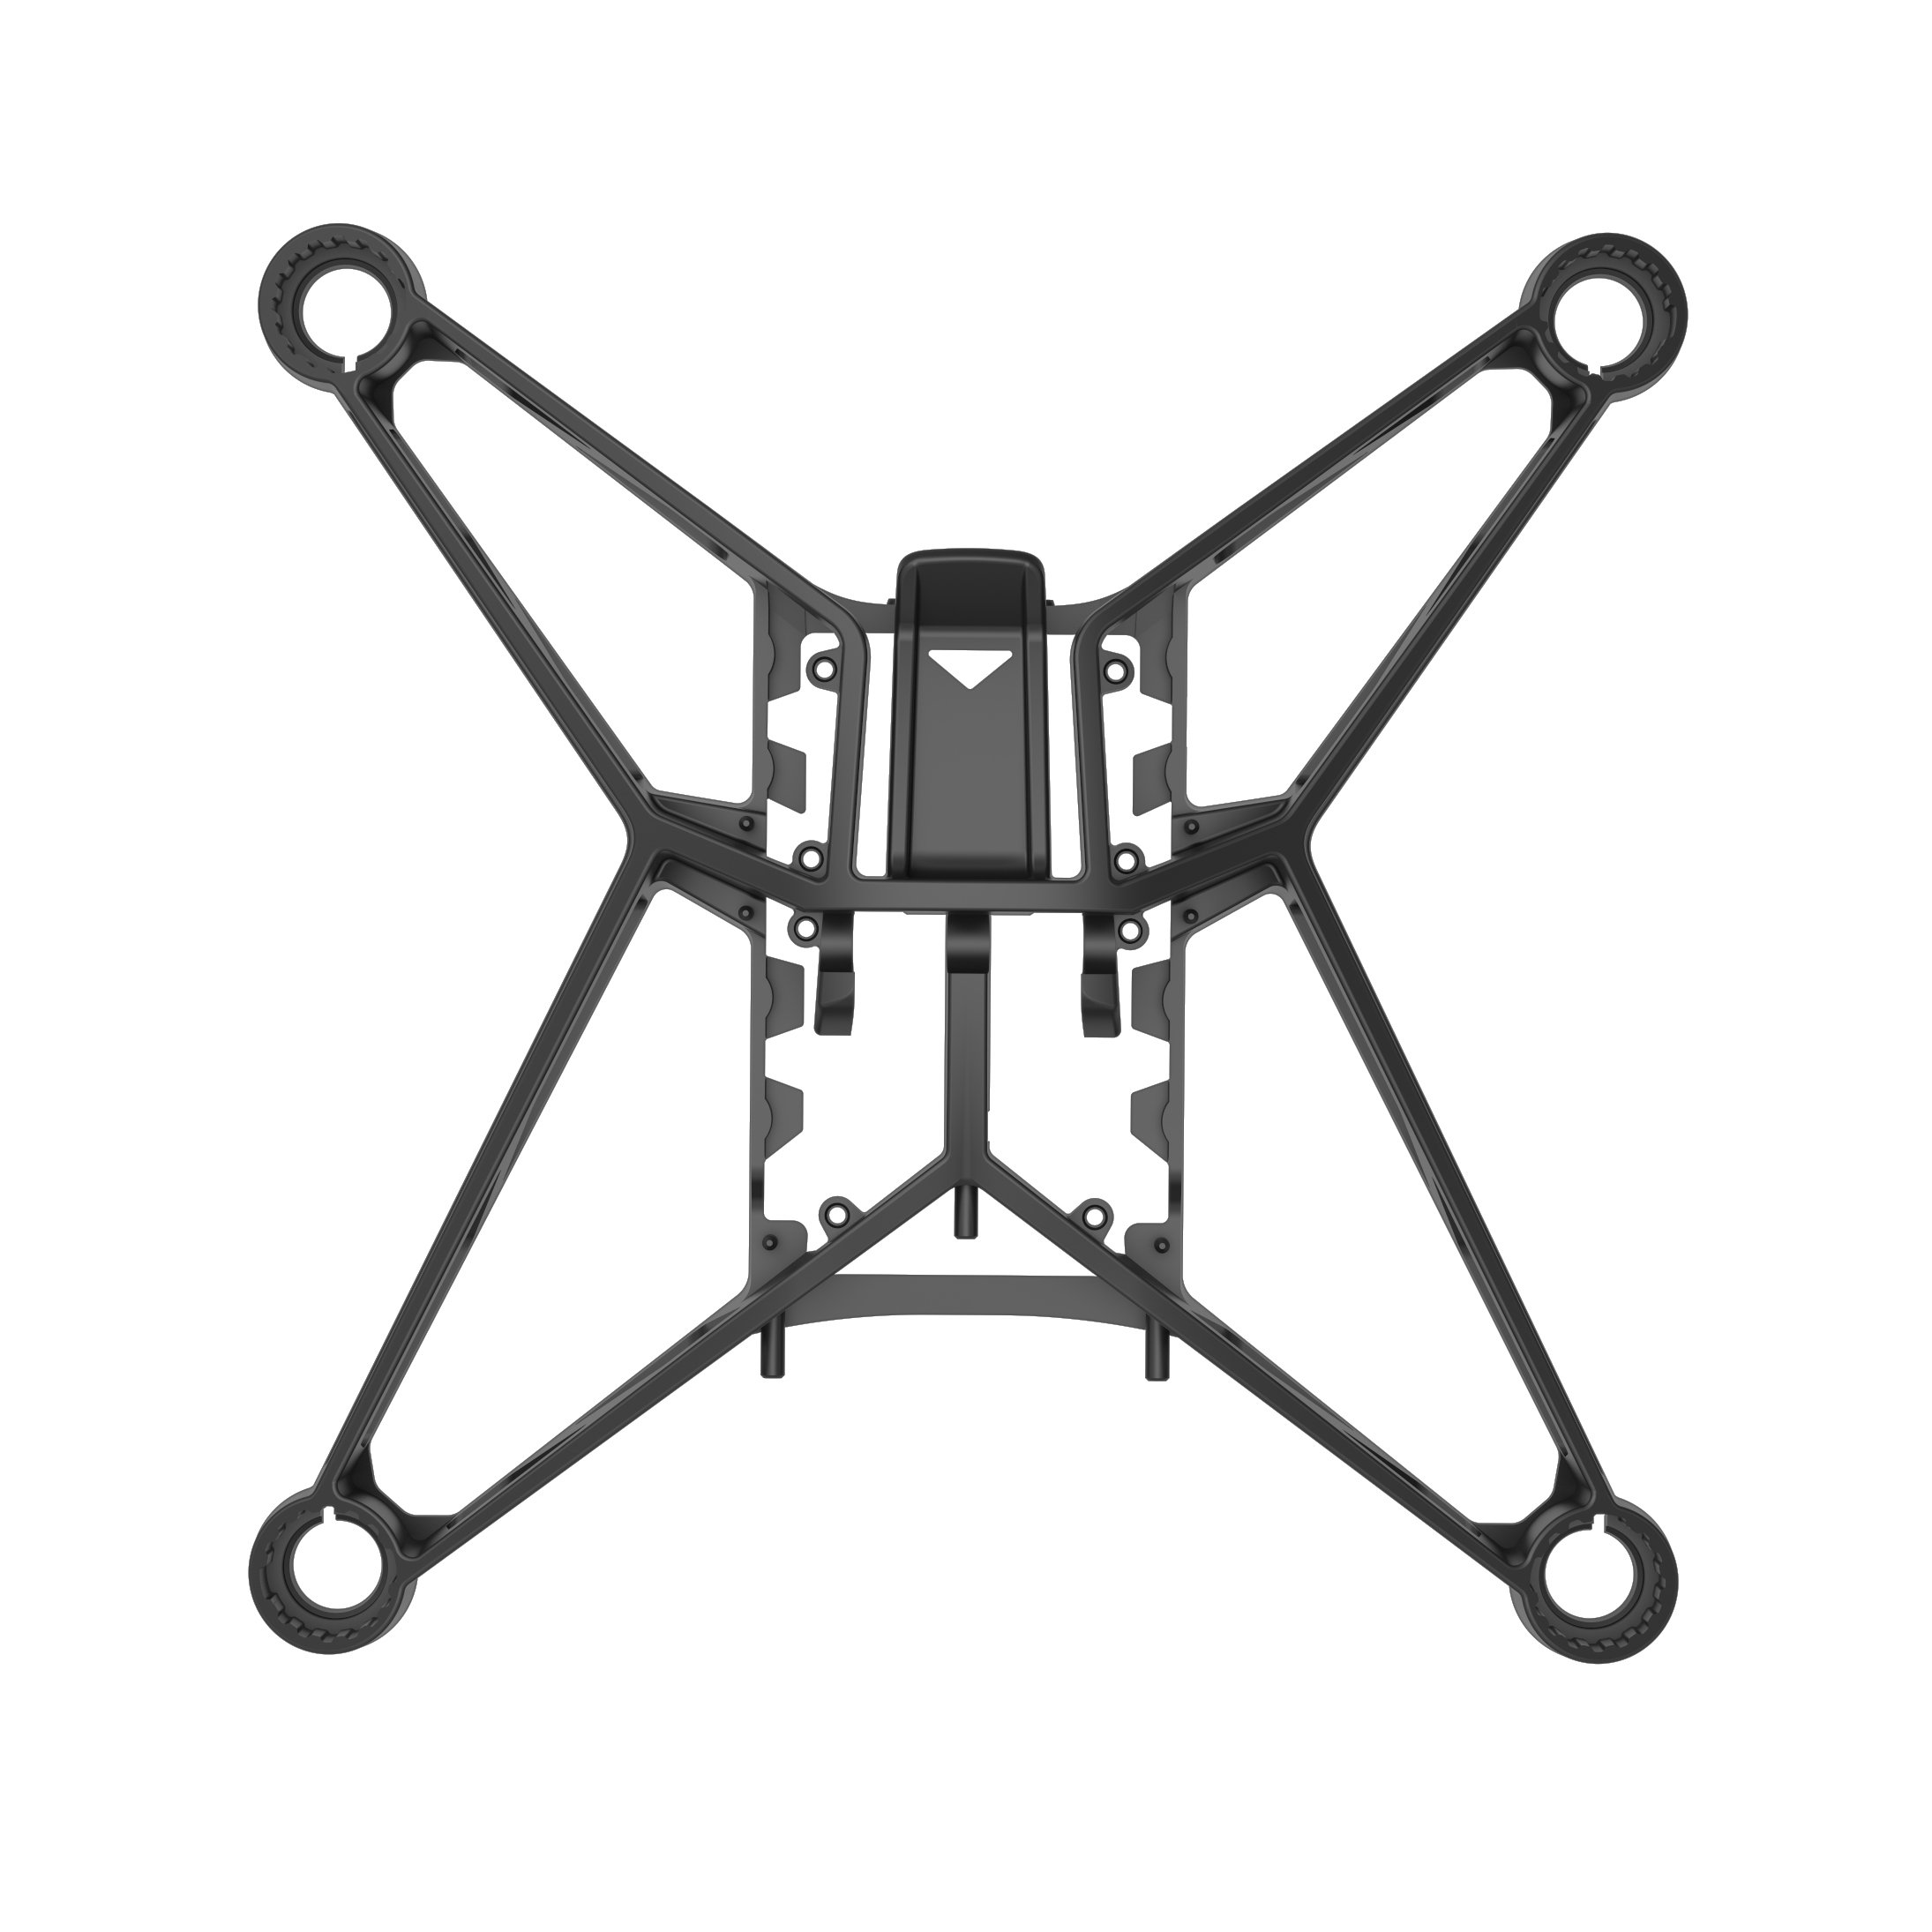 Parrot MiniDrone Rolling Spider – Central Cross